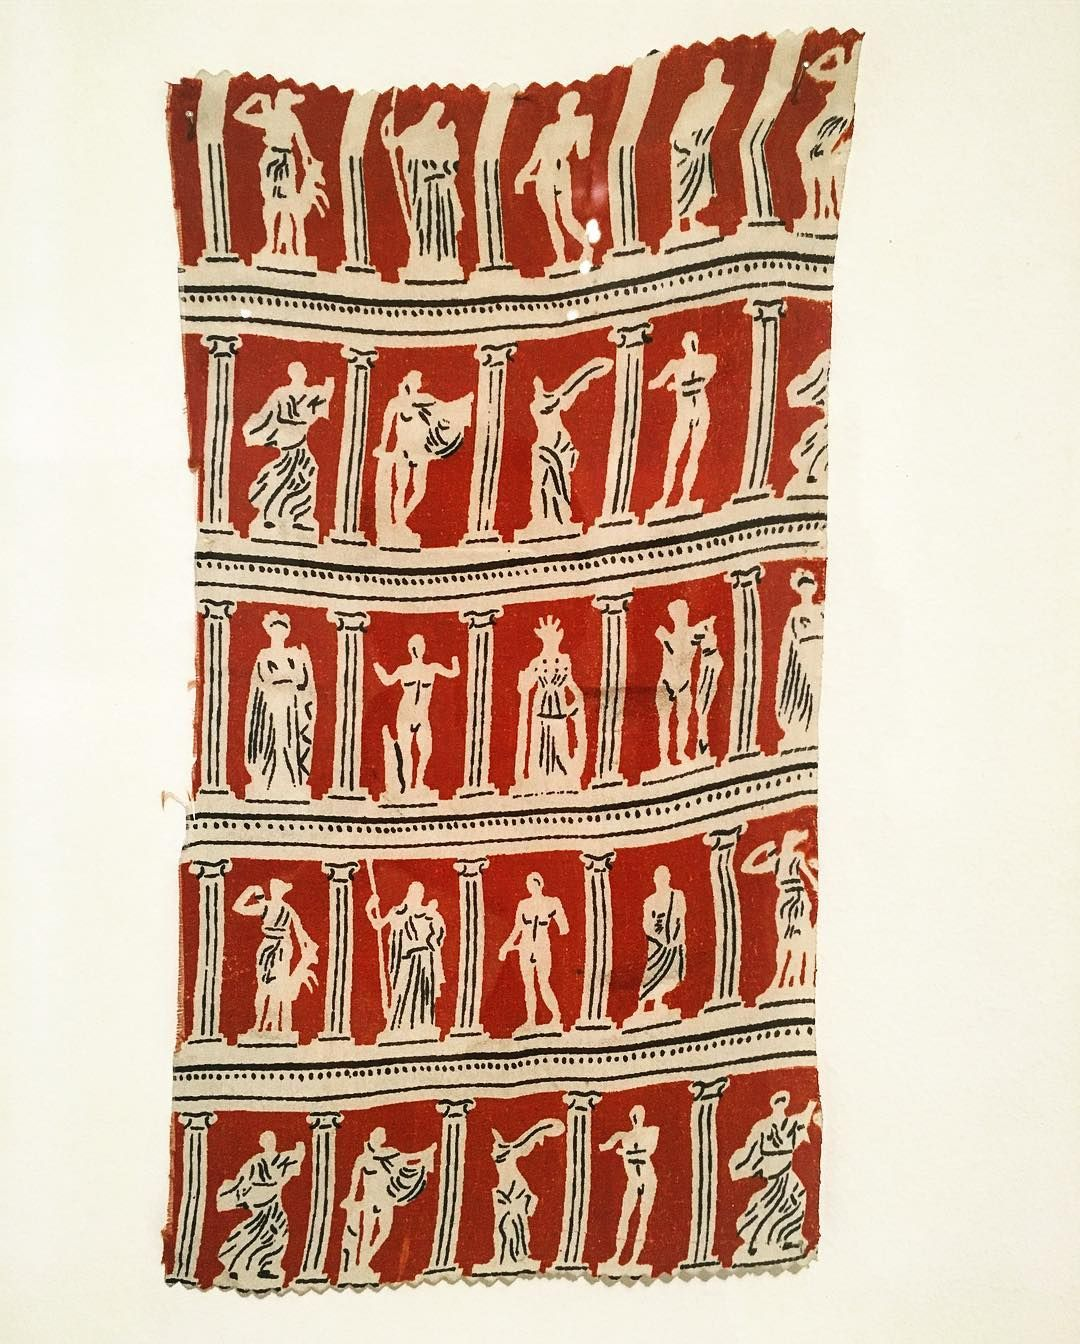 """Yiannis Tsarouchis' rare fabric design and print #yiannistsarouchis #fabric #design #print #benakimuseum #inspiration #greek #columns #colors #repetition #rythme #sample #statue #deepred #exhibition #influence #workofart #art #painter #spacelabarchitecture """"I draw as much as I can, it is something like training"""" Yiannis Tsarouchis words"""